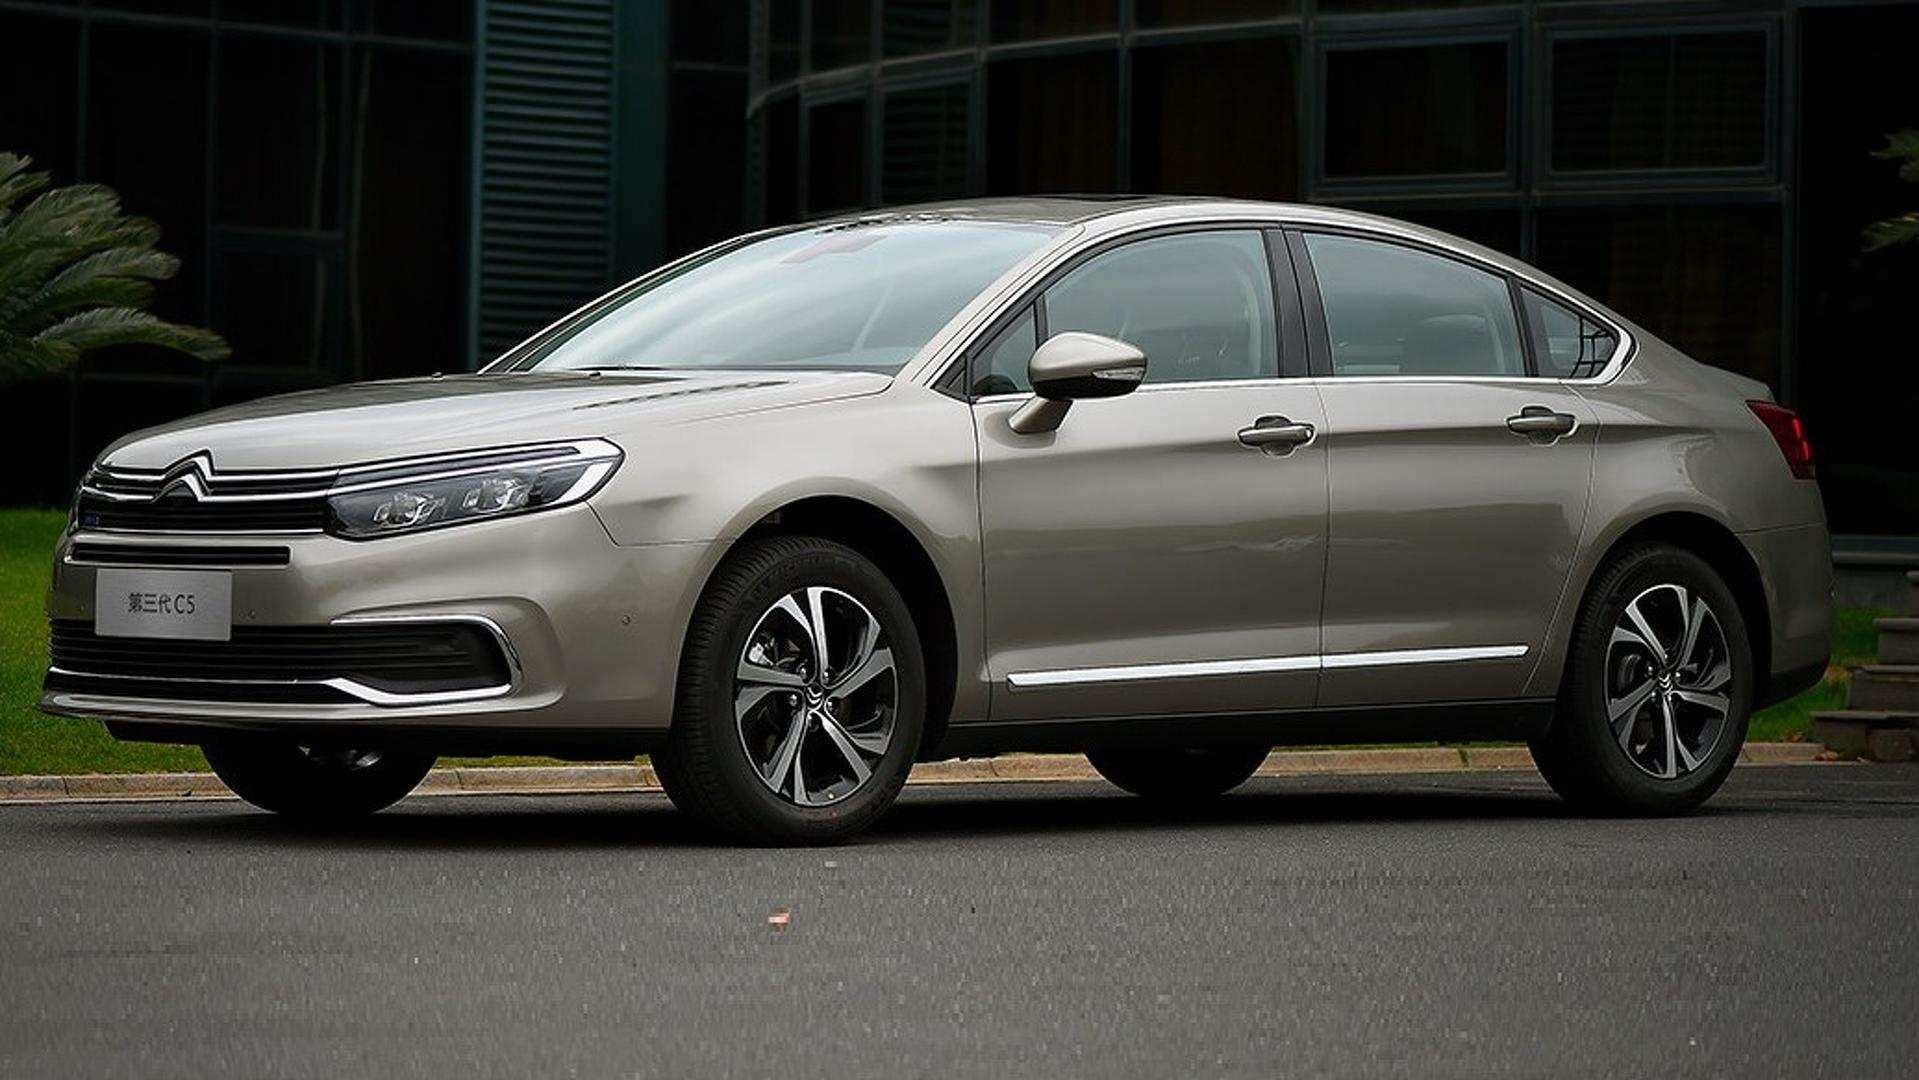 98 All New 2019 Citroen C5 Price Design And Review